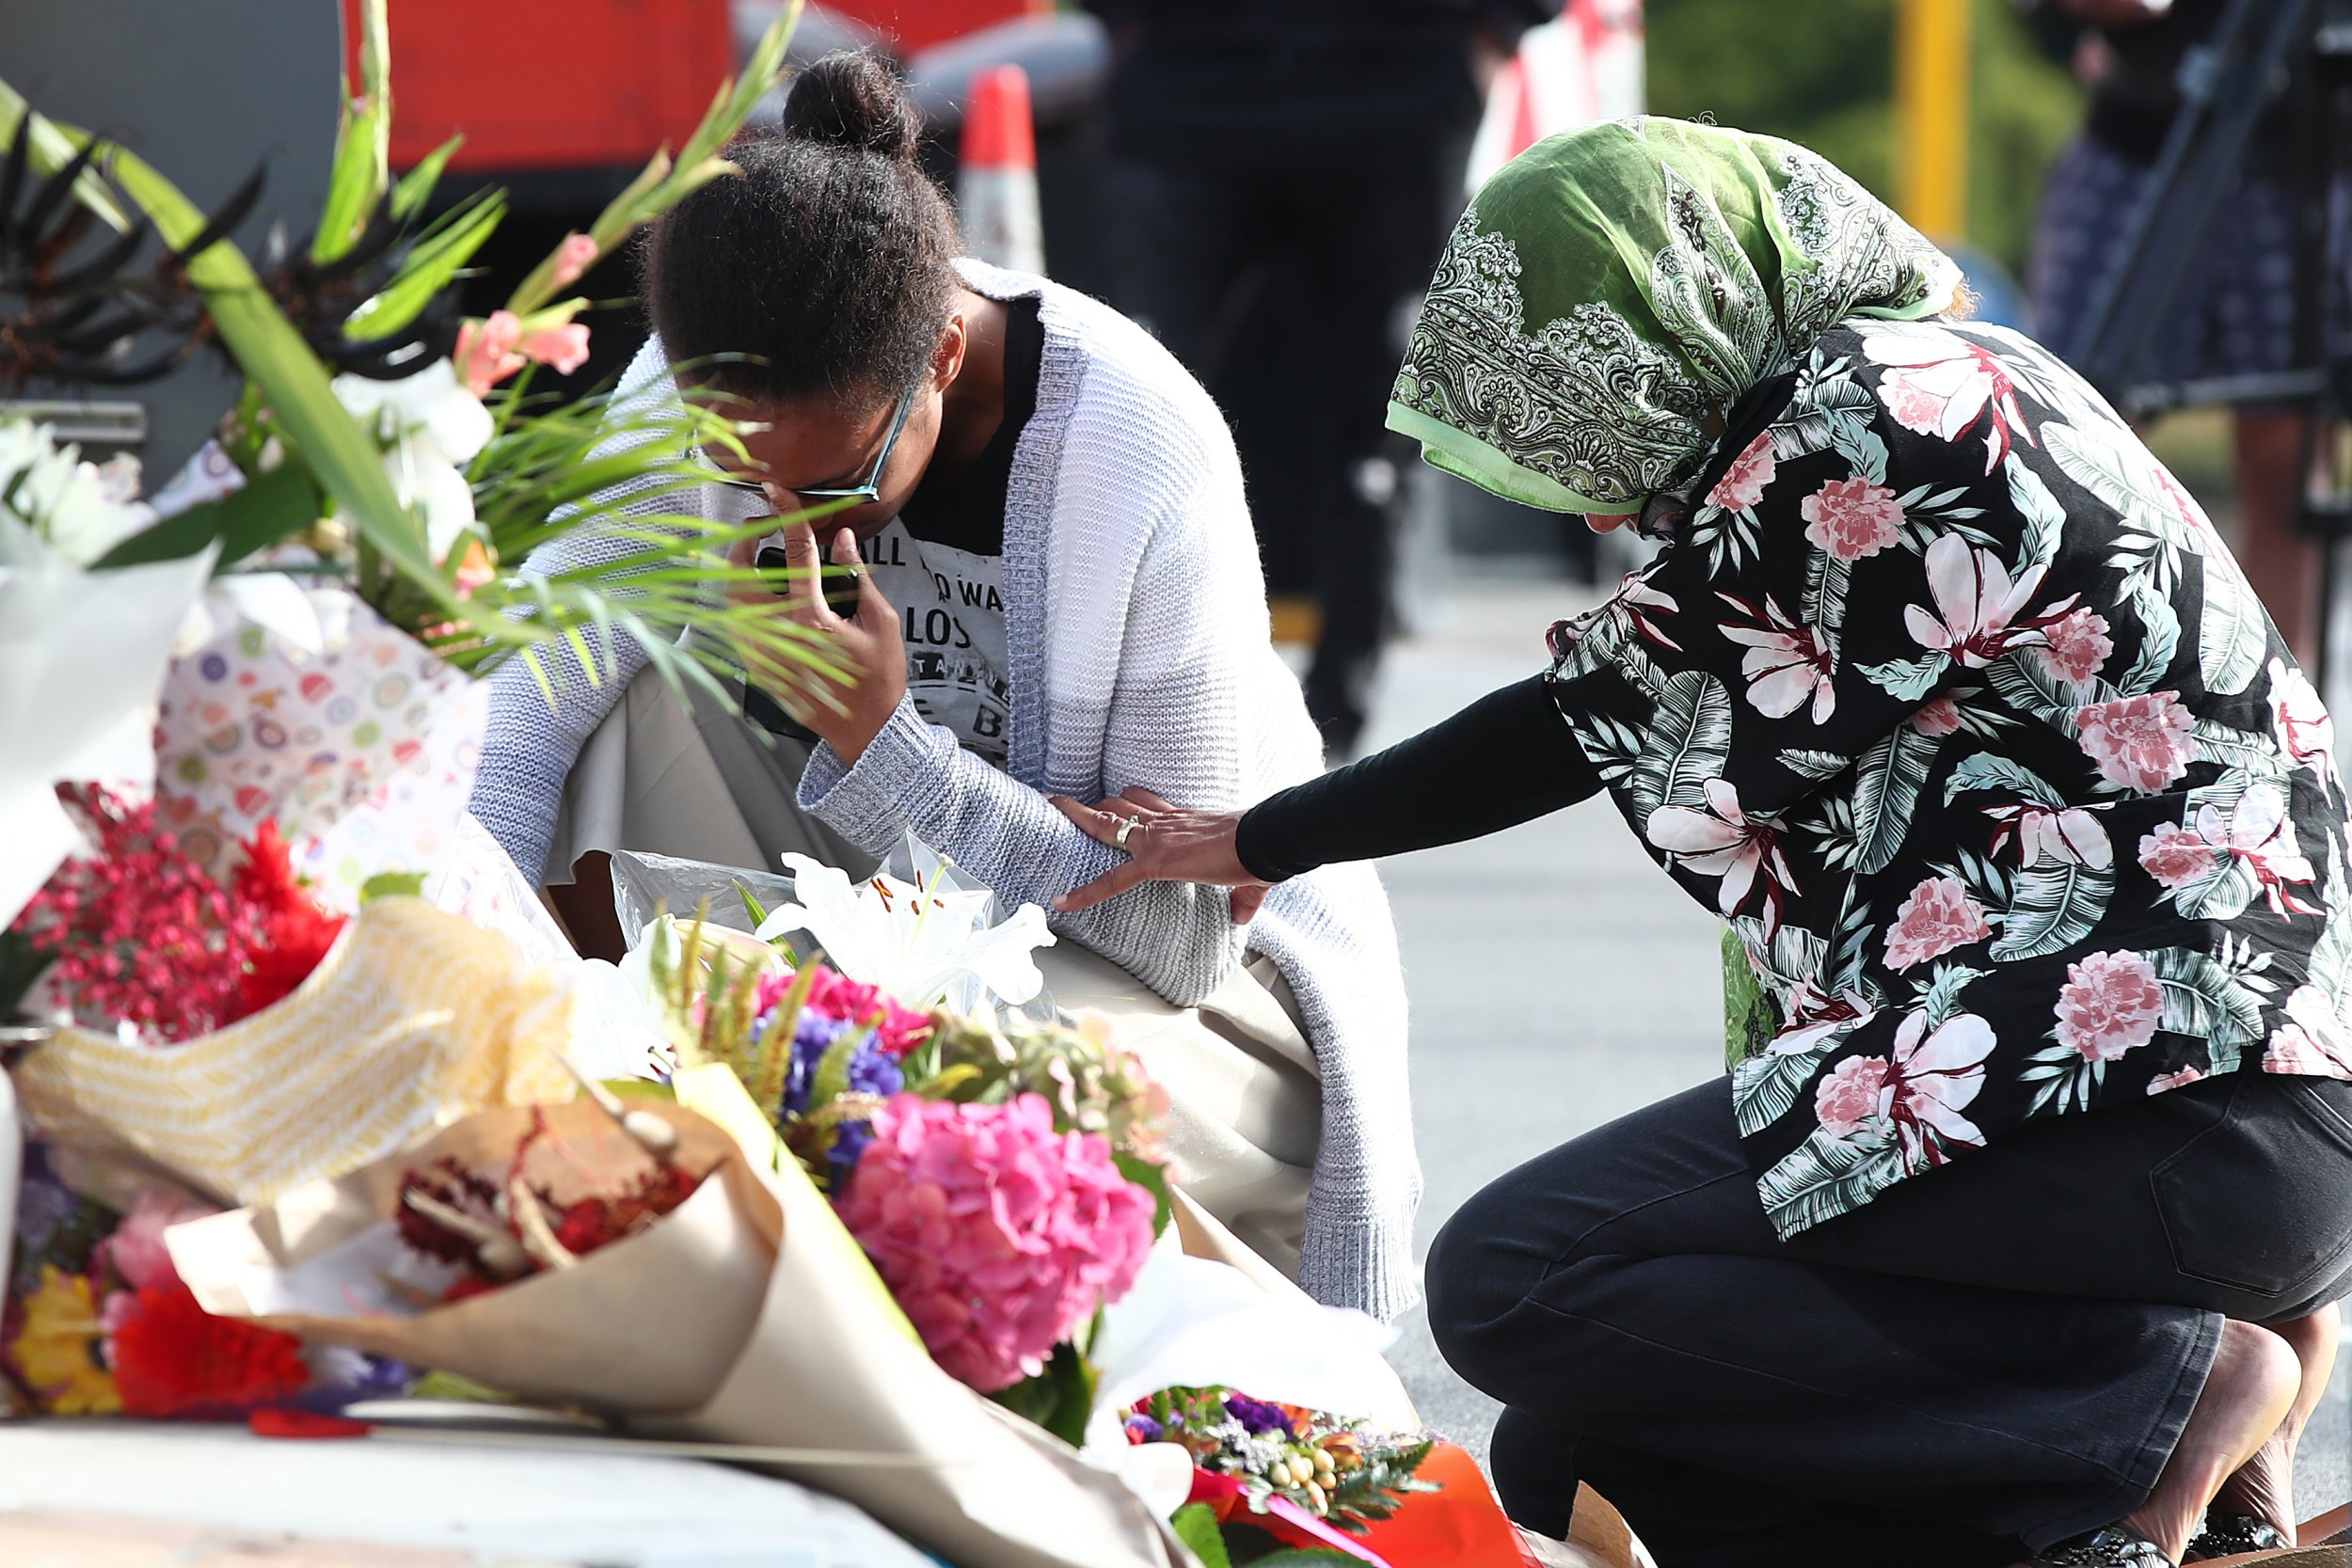 new zealand terror attack tribute getty images